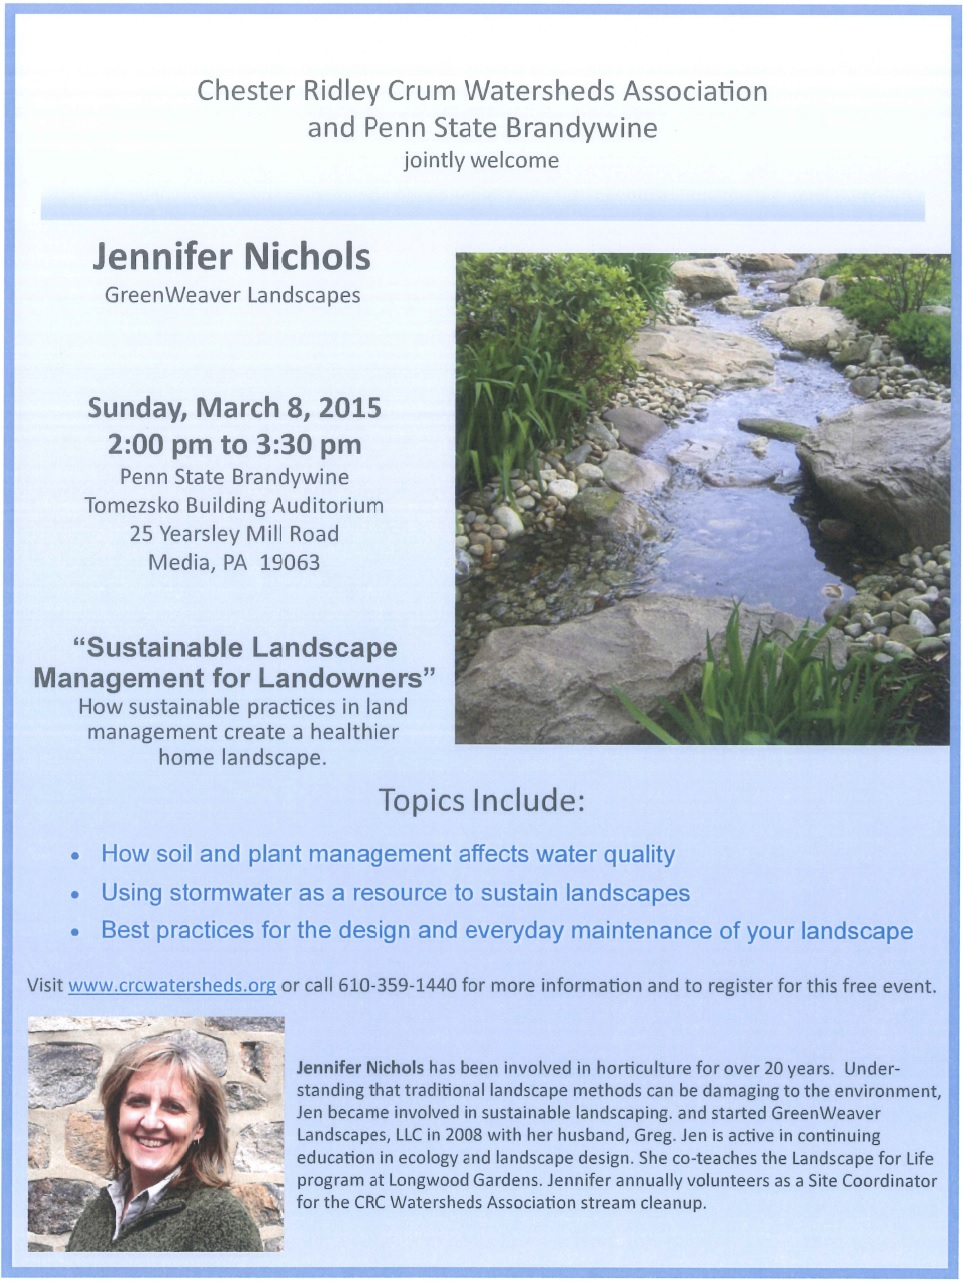 Jennifer Nichols Workshops